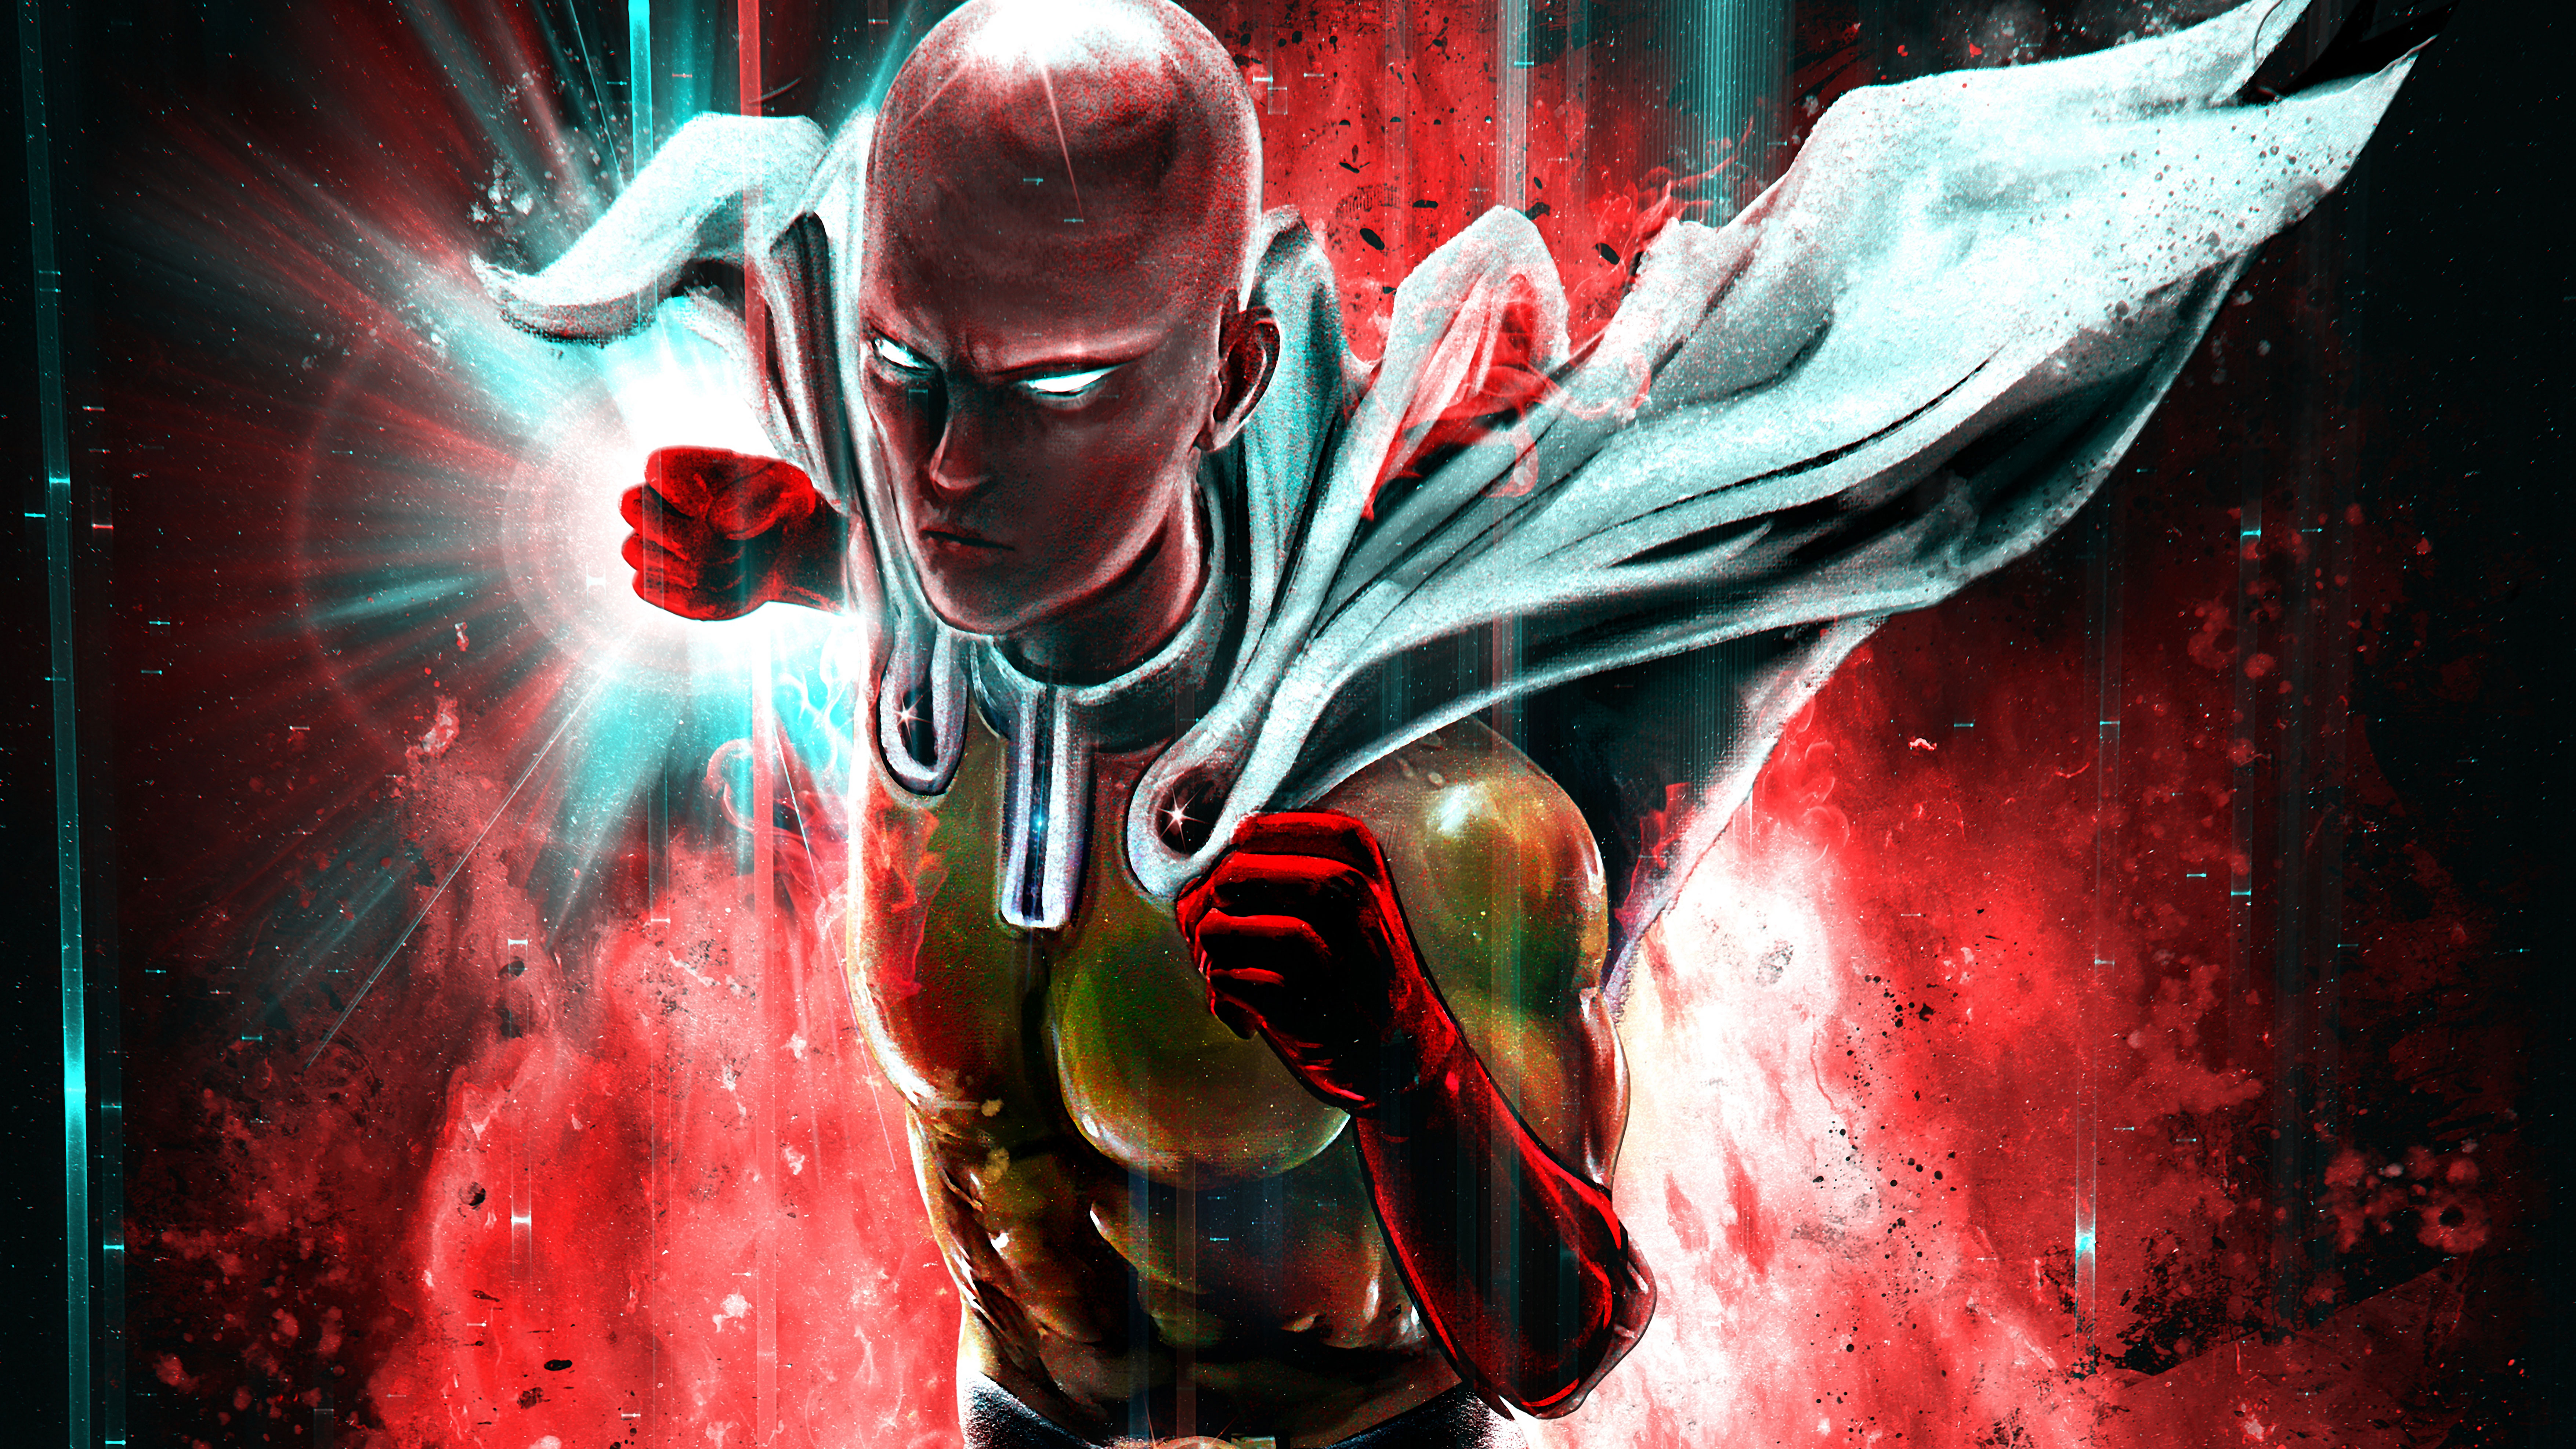 One Punch Man 8k Hd Anime 4k Wallpapers Images Backgrounds